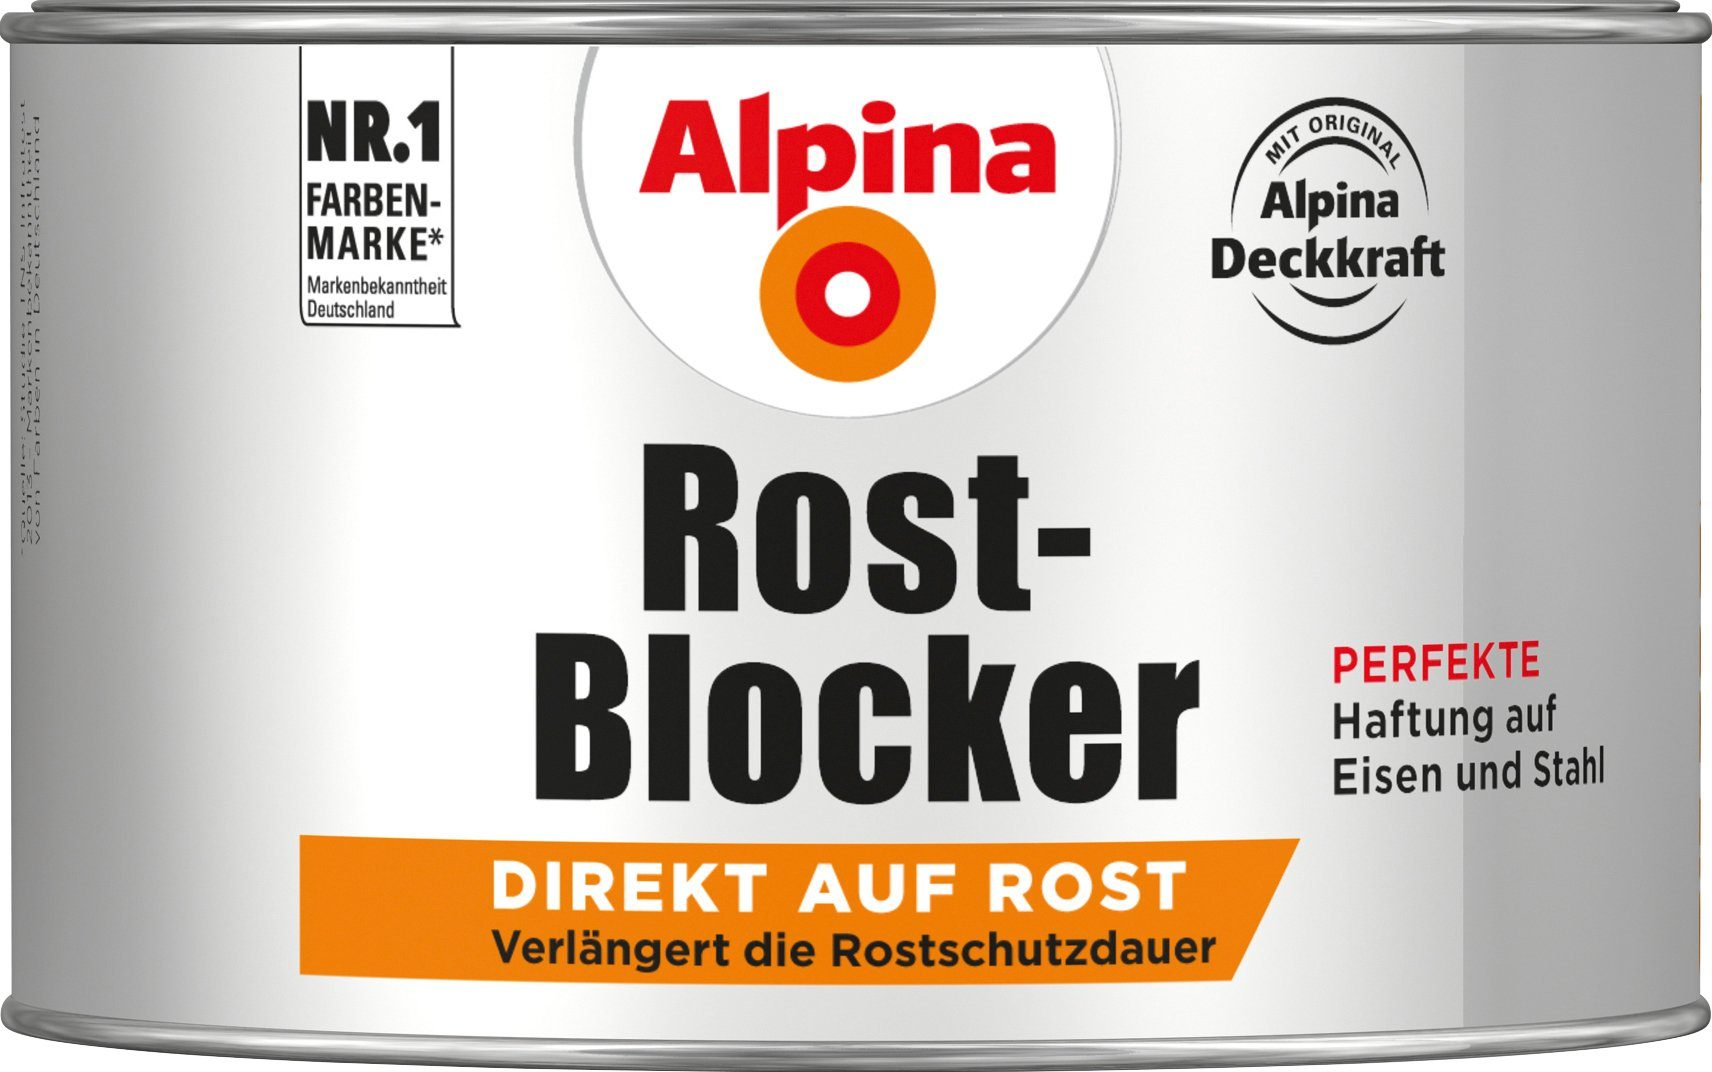 ALPINA Rostblocker »Rost-Blocker«, grau, 300 ml